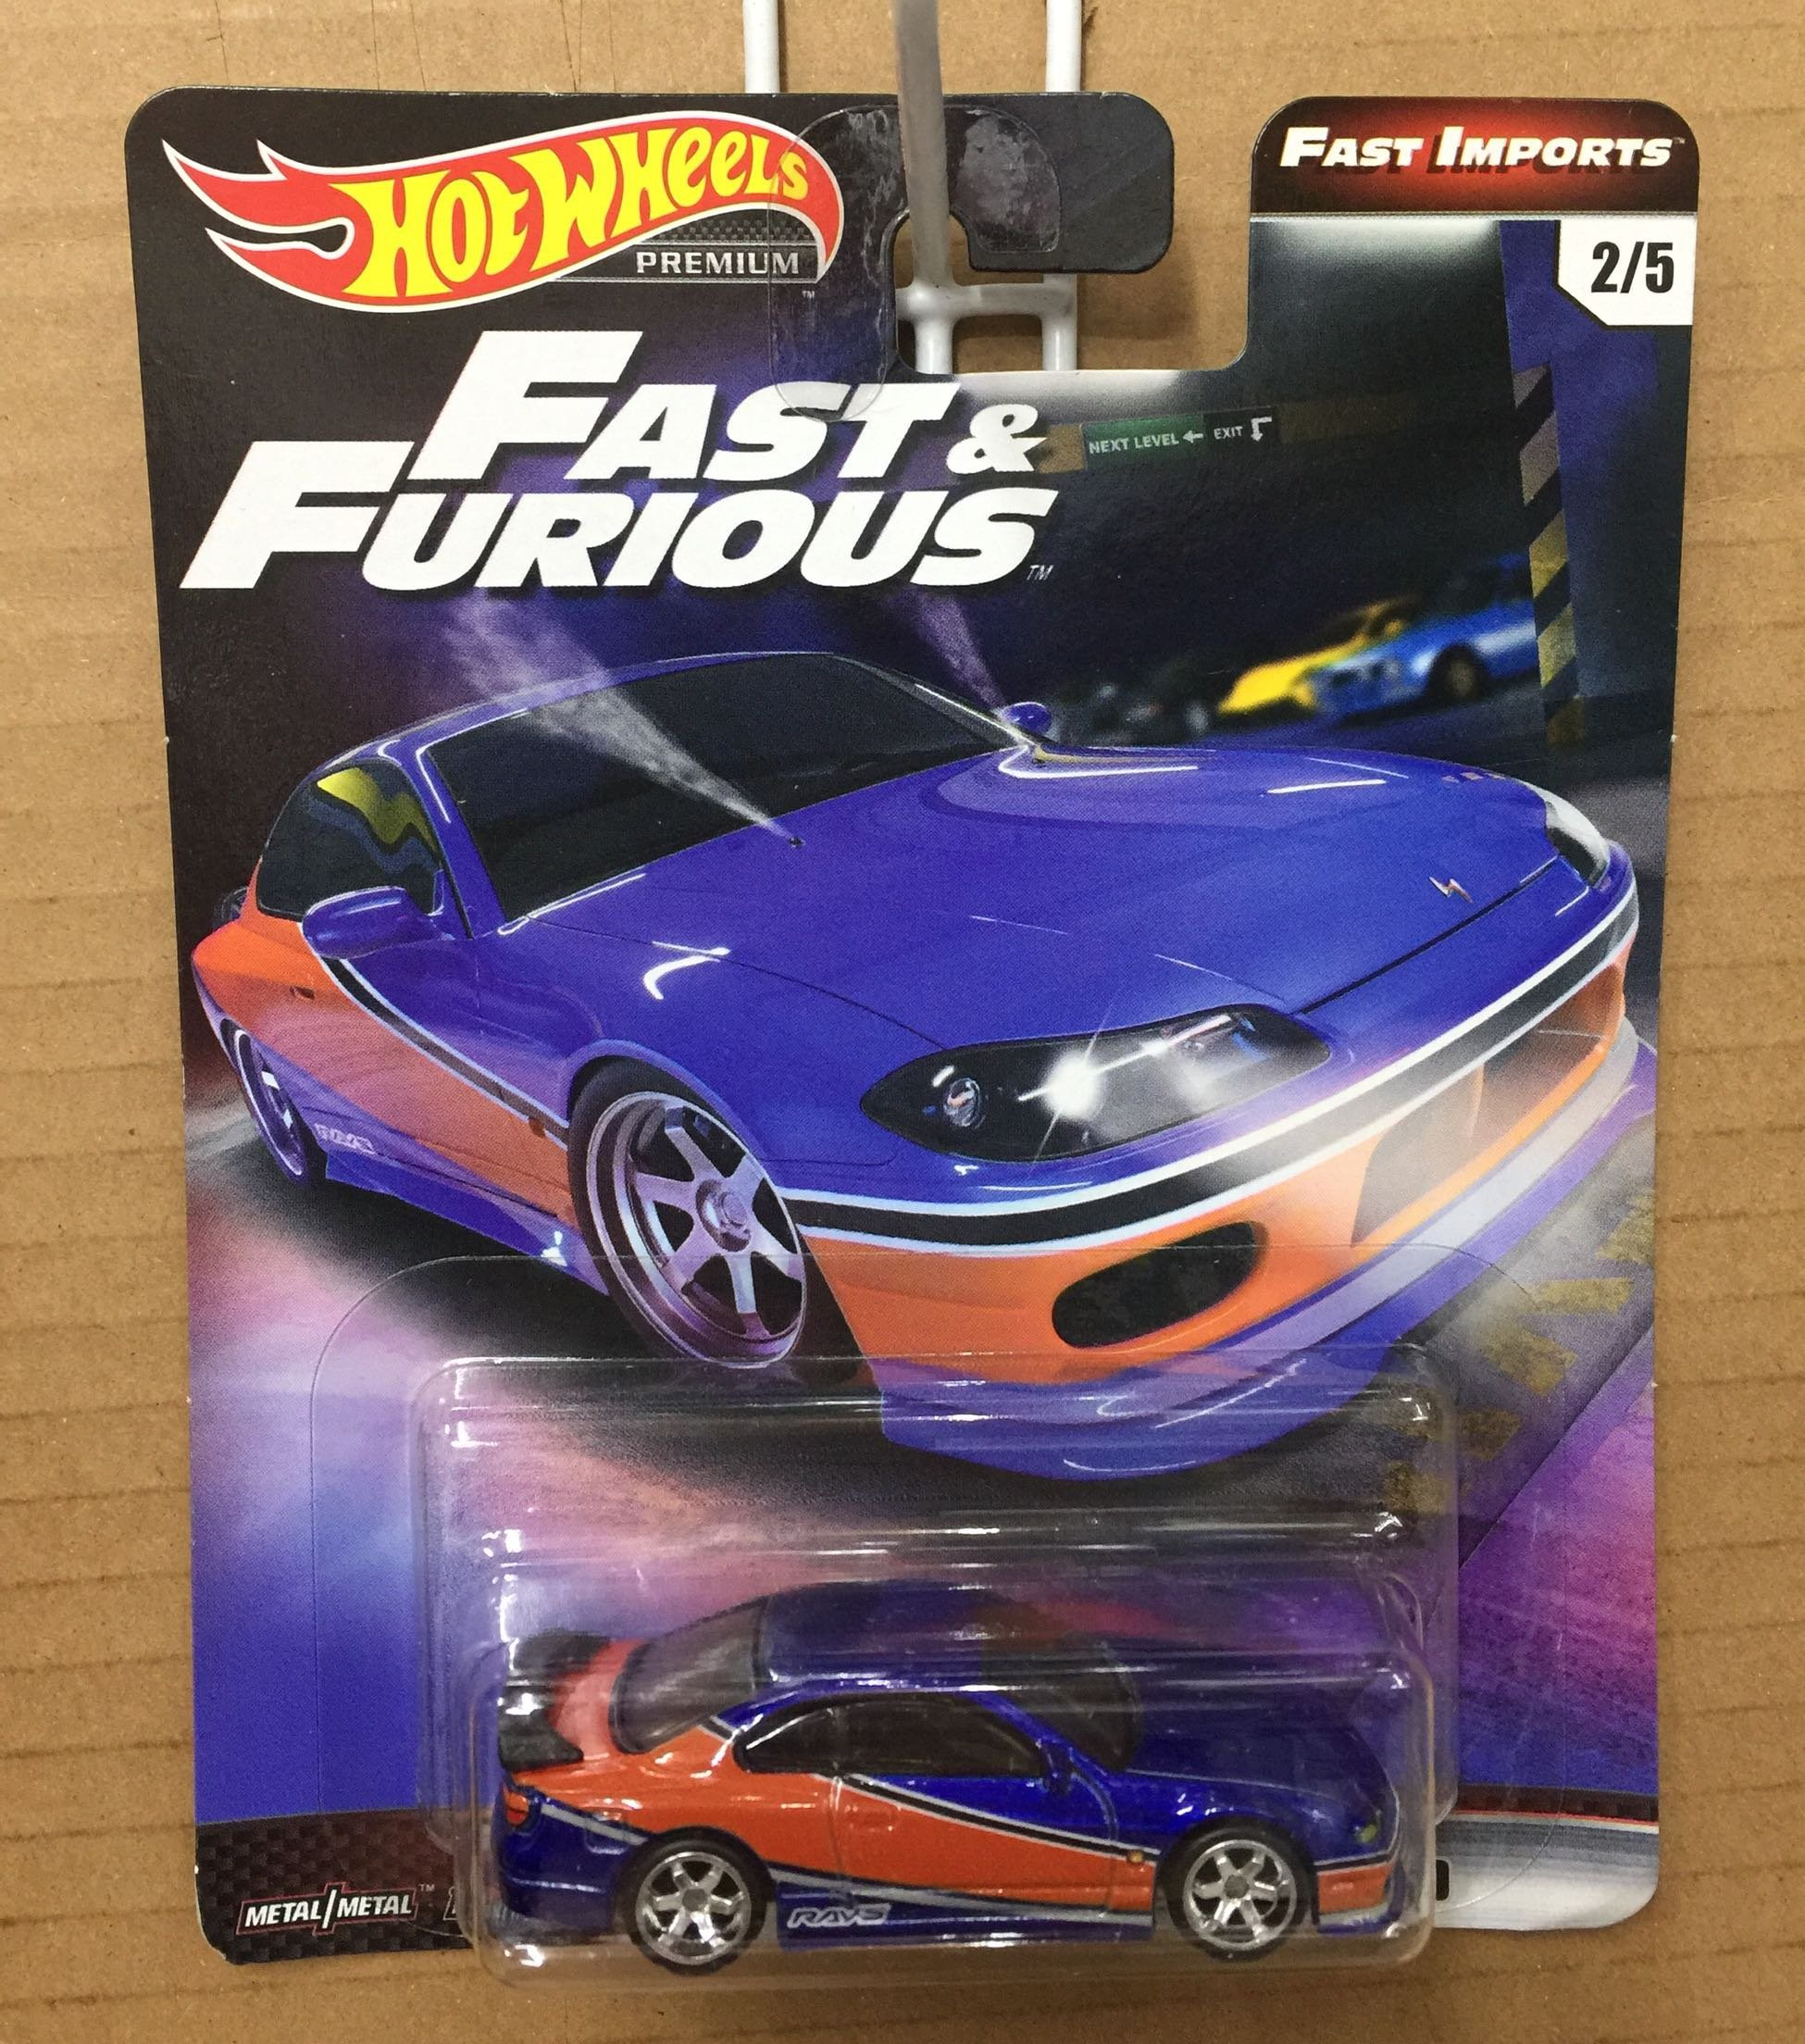 Hot Wheels Cars 1/64  Fast Furious Nissan Silvia S15 Collector Edition Metal Alloy Car